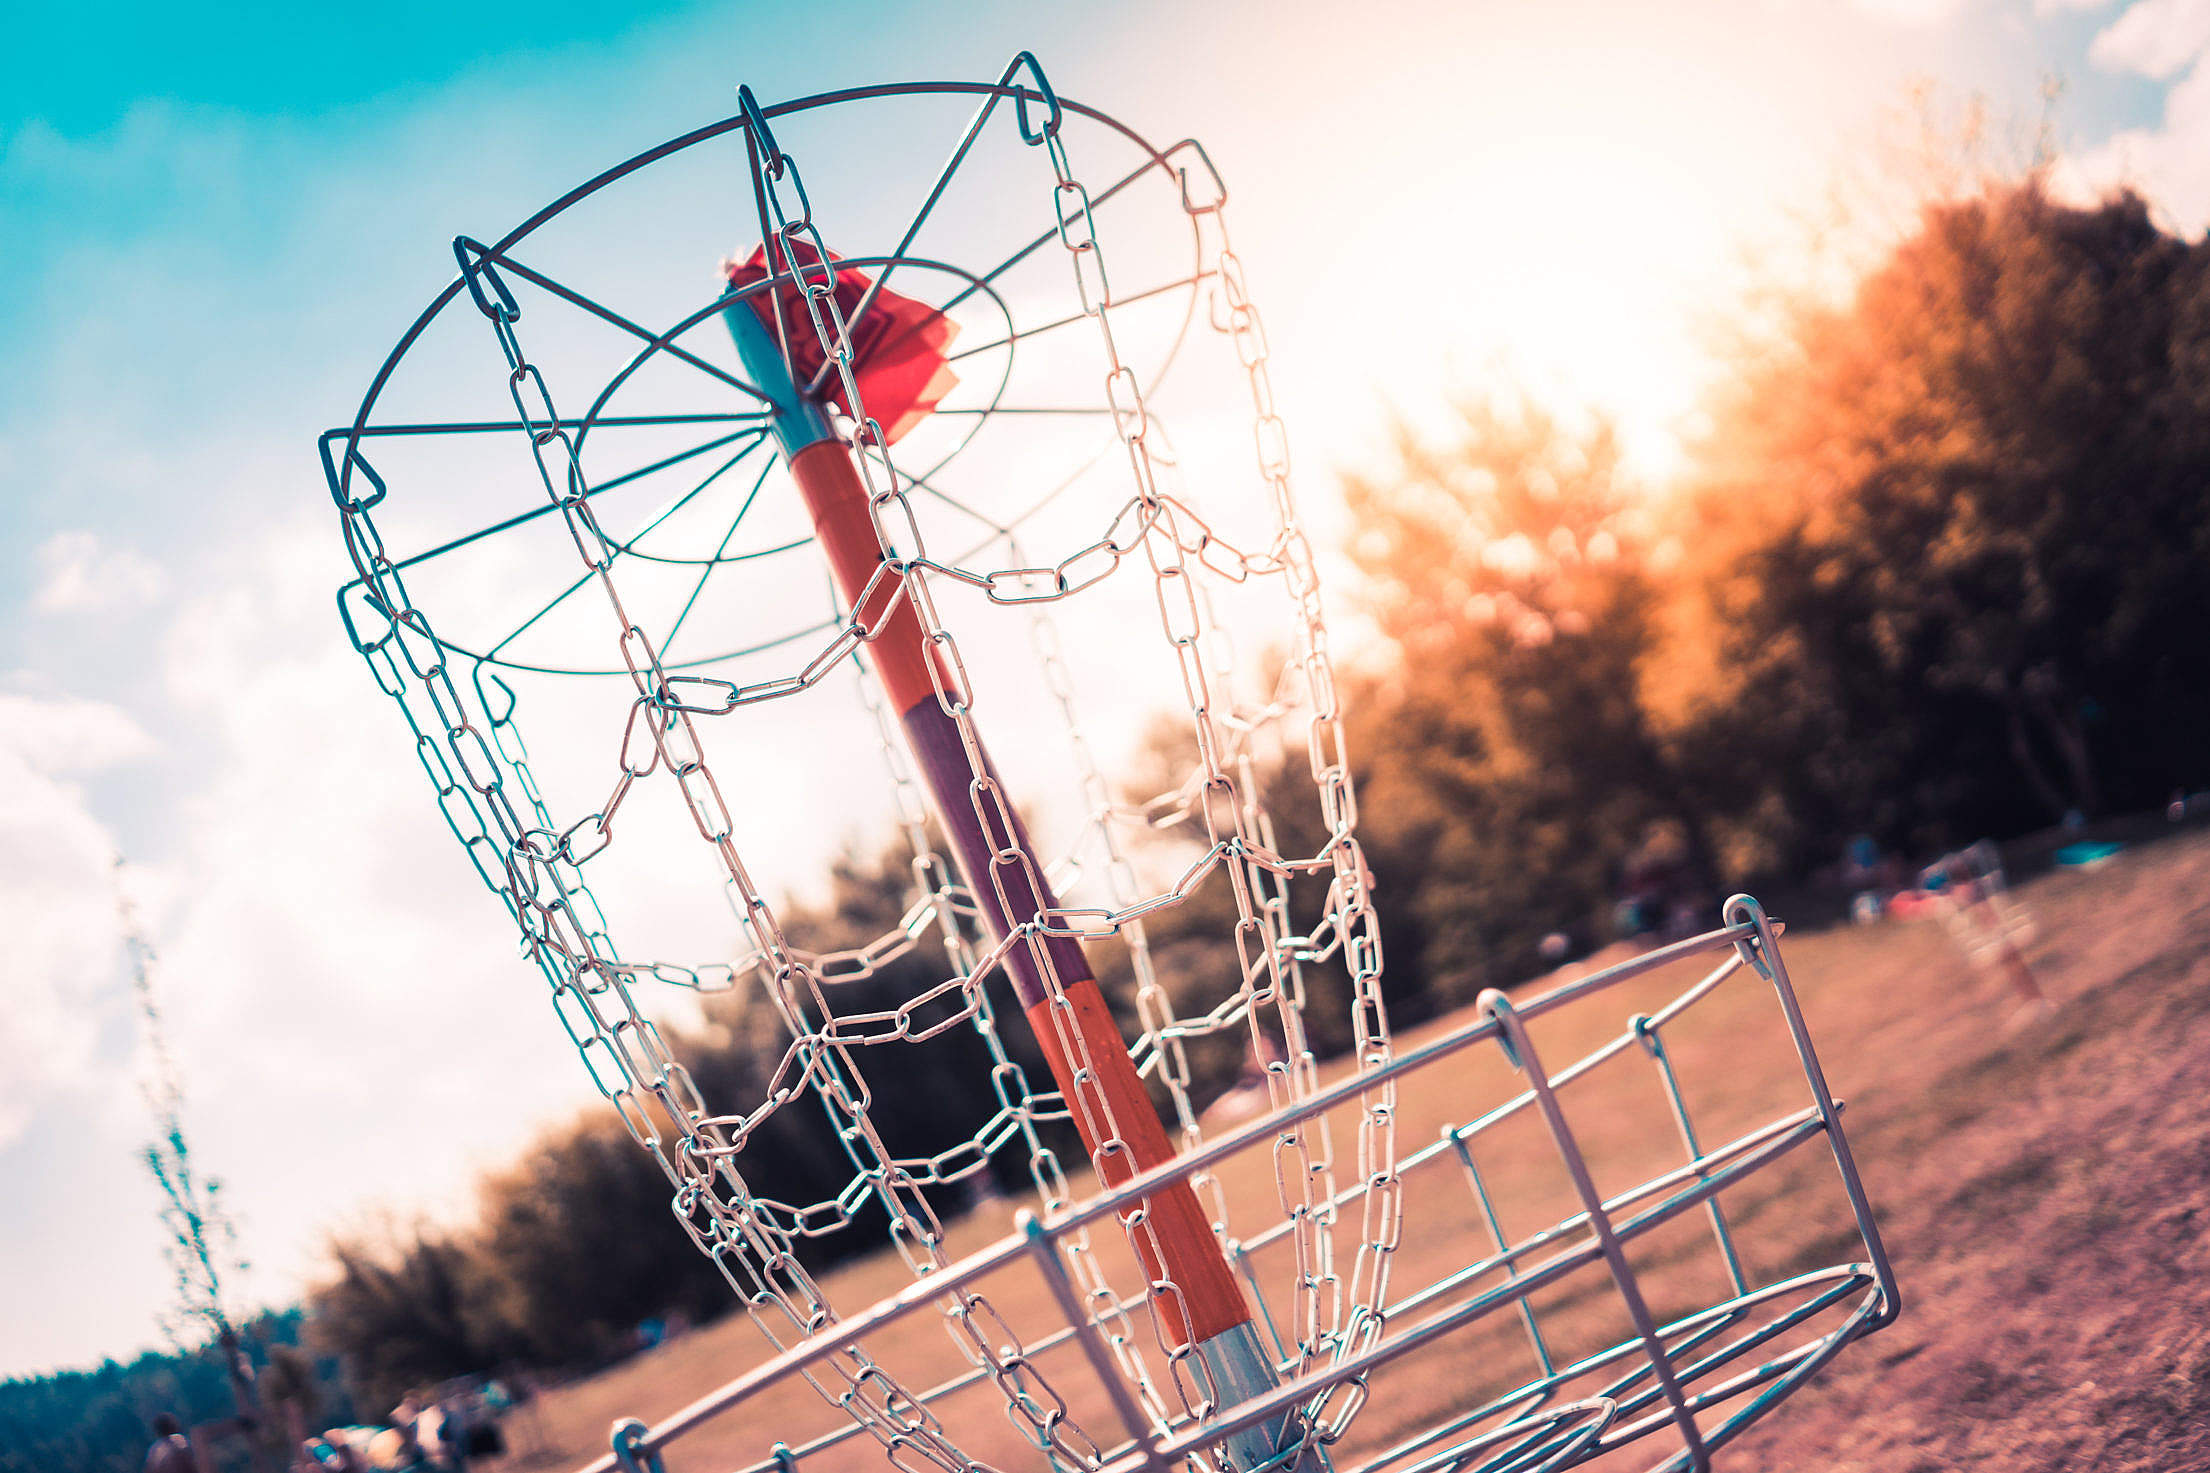 Discgolf Target Free Stock Photo